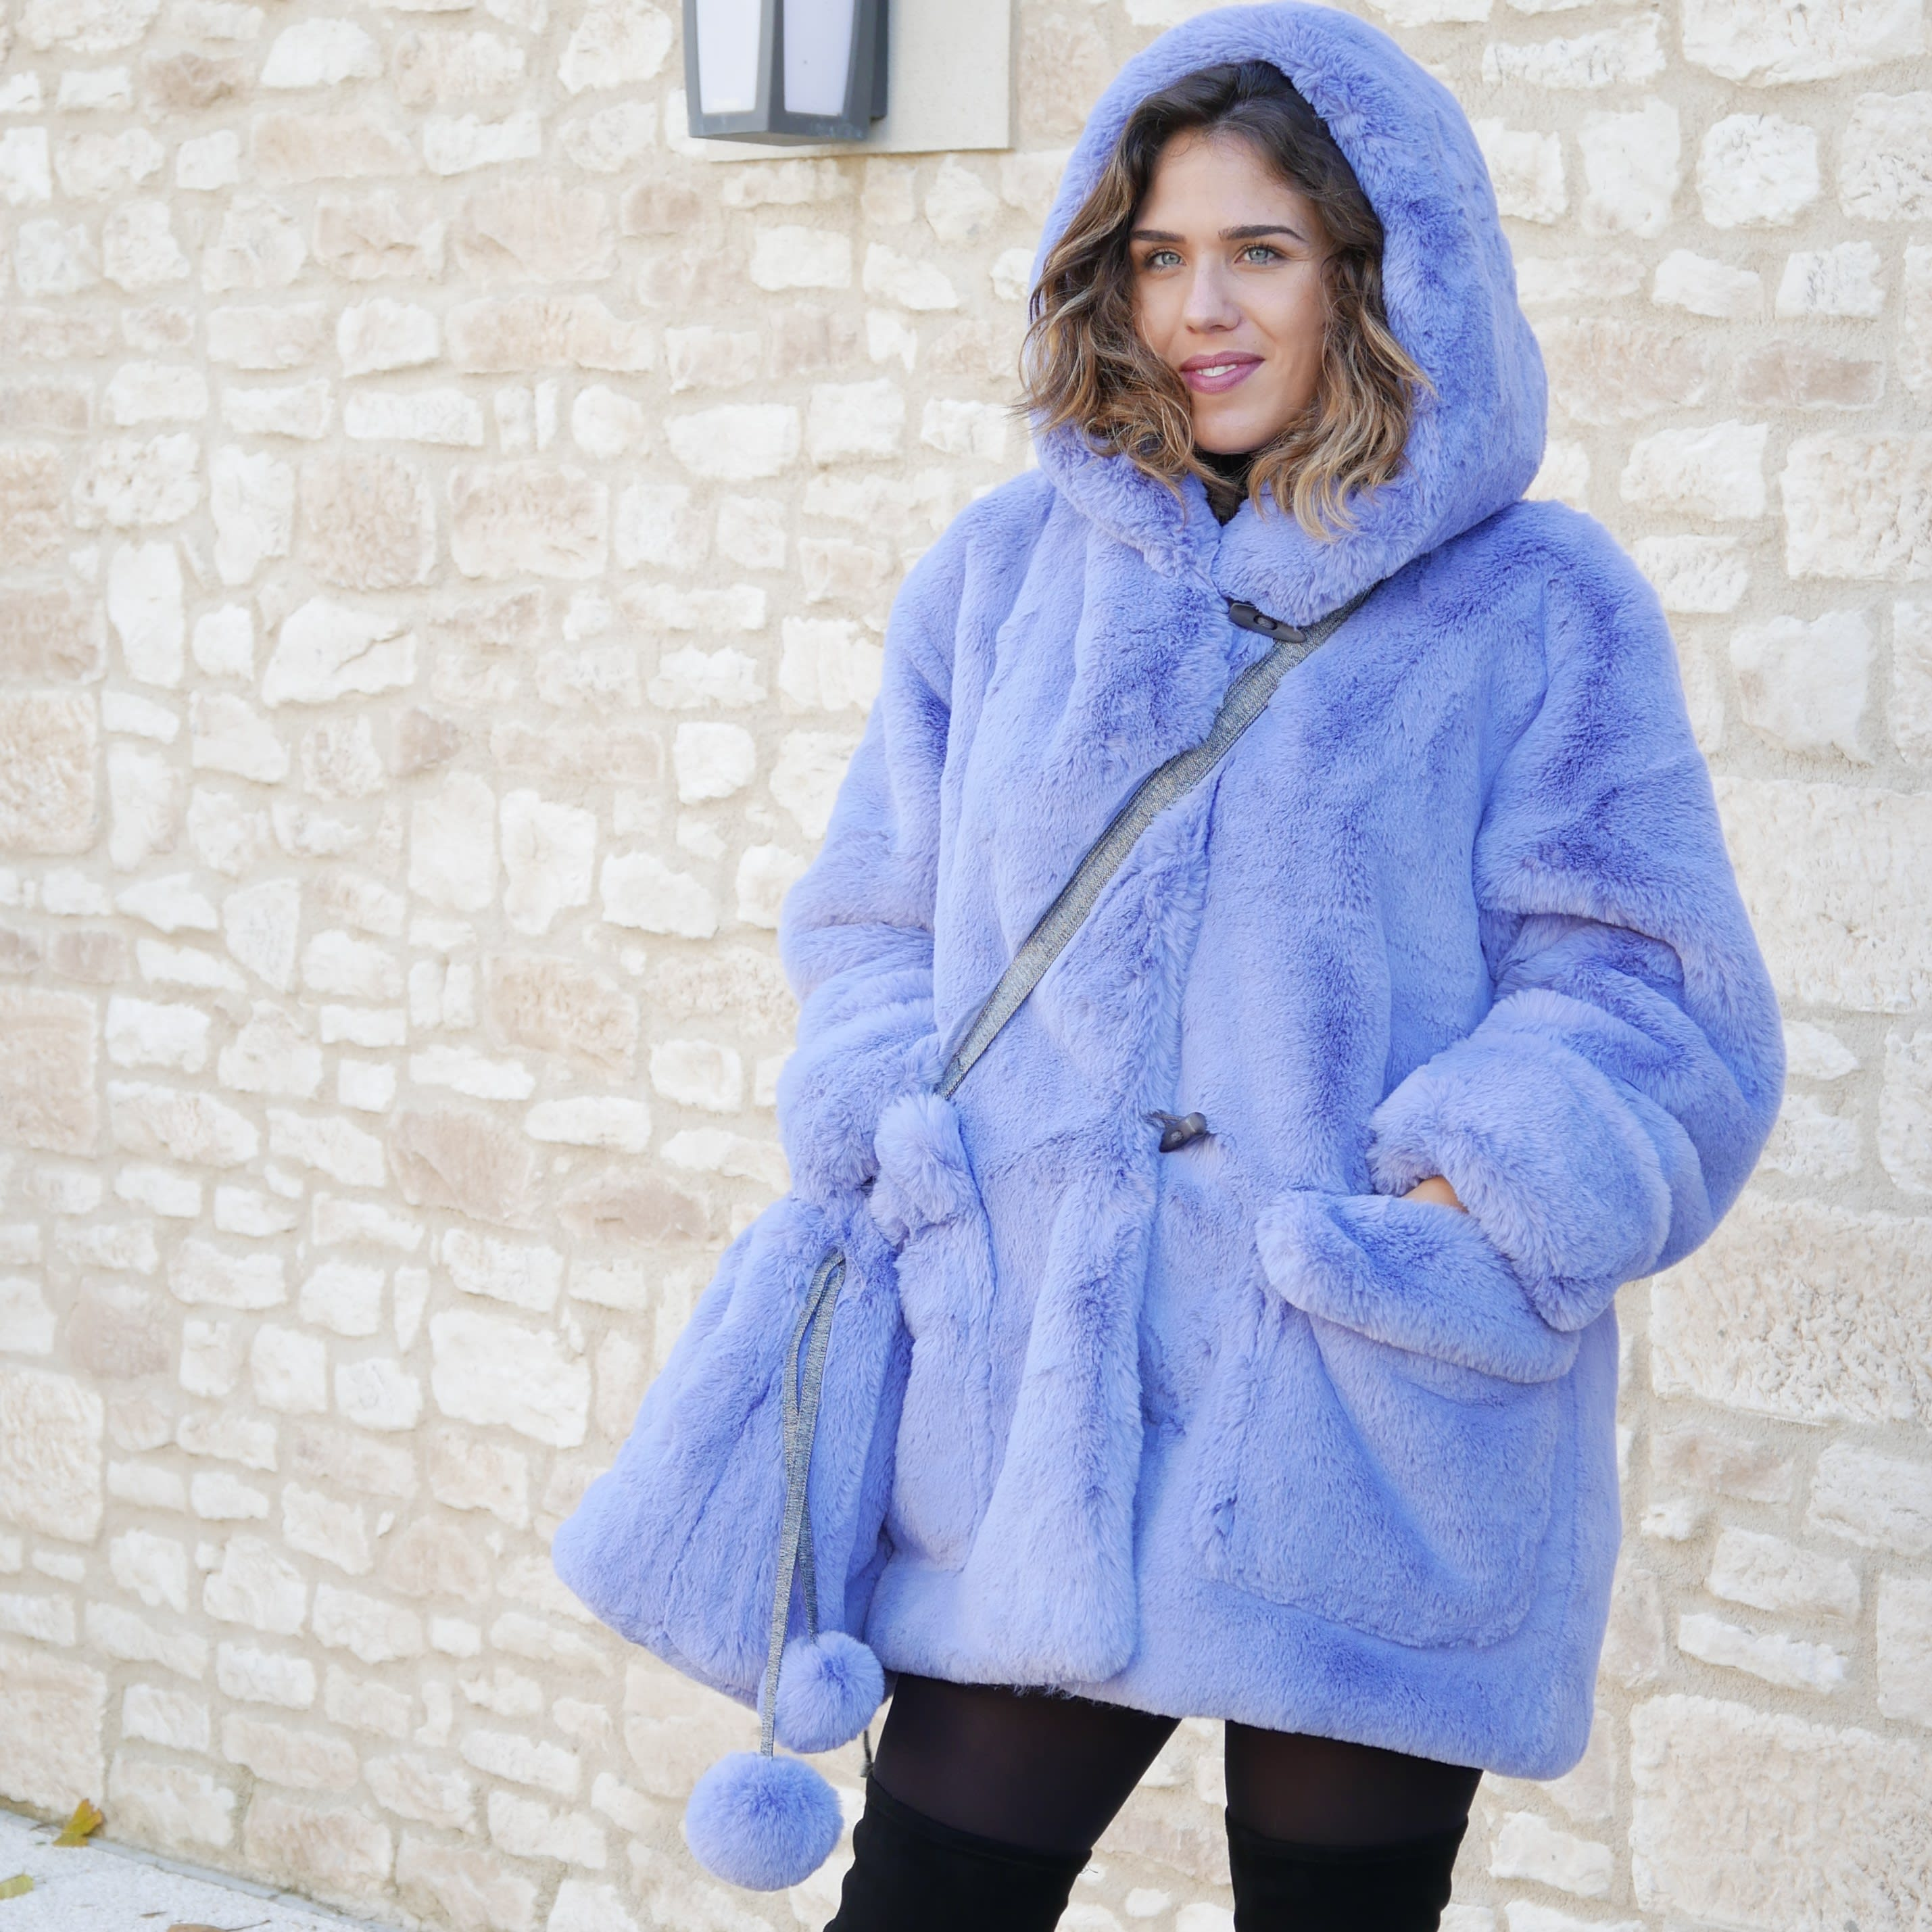 Fur coat with hood, blue purple lavender faux fur duffle coat, very warm, chic and washable.